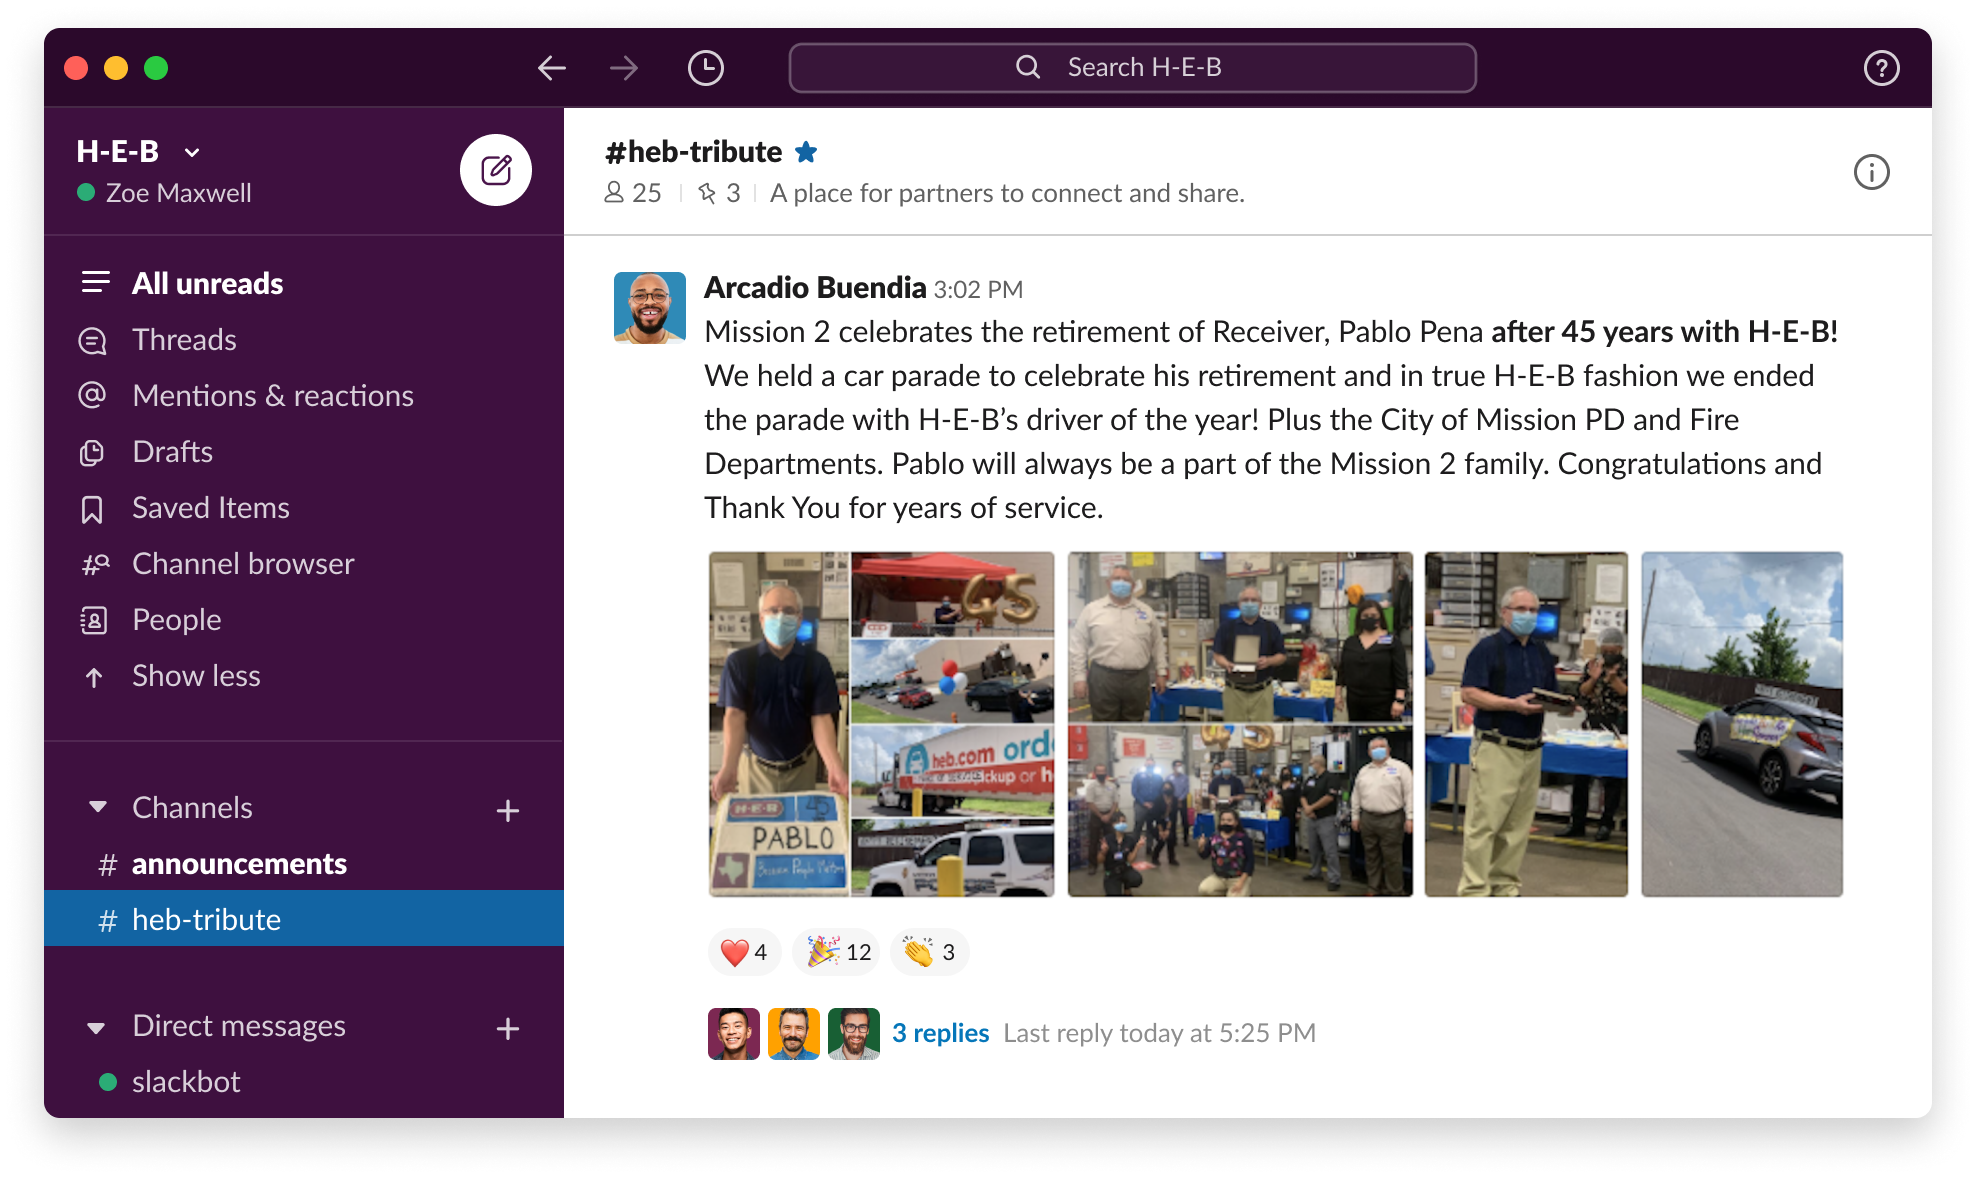 An anonymized example of the Slack UI at H-E-B